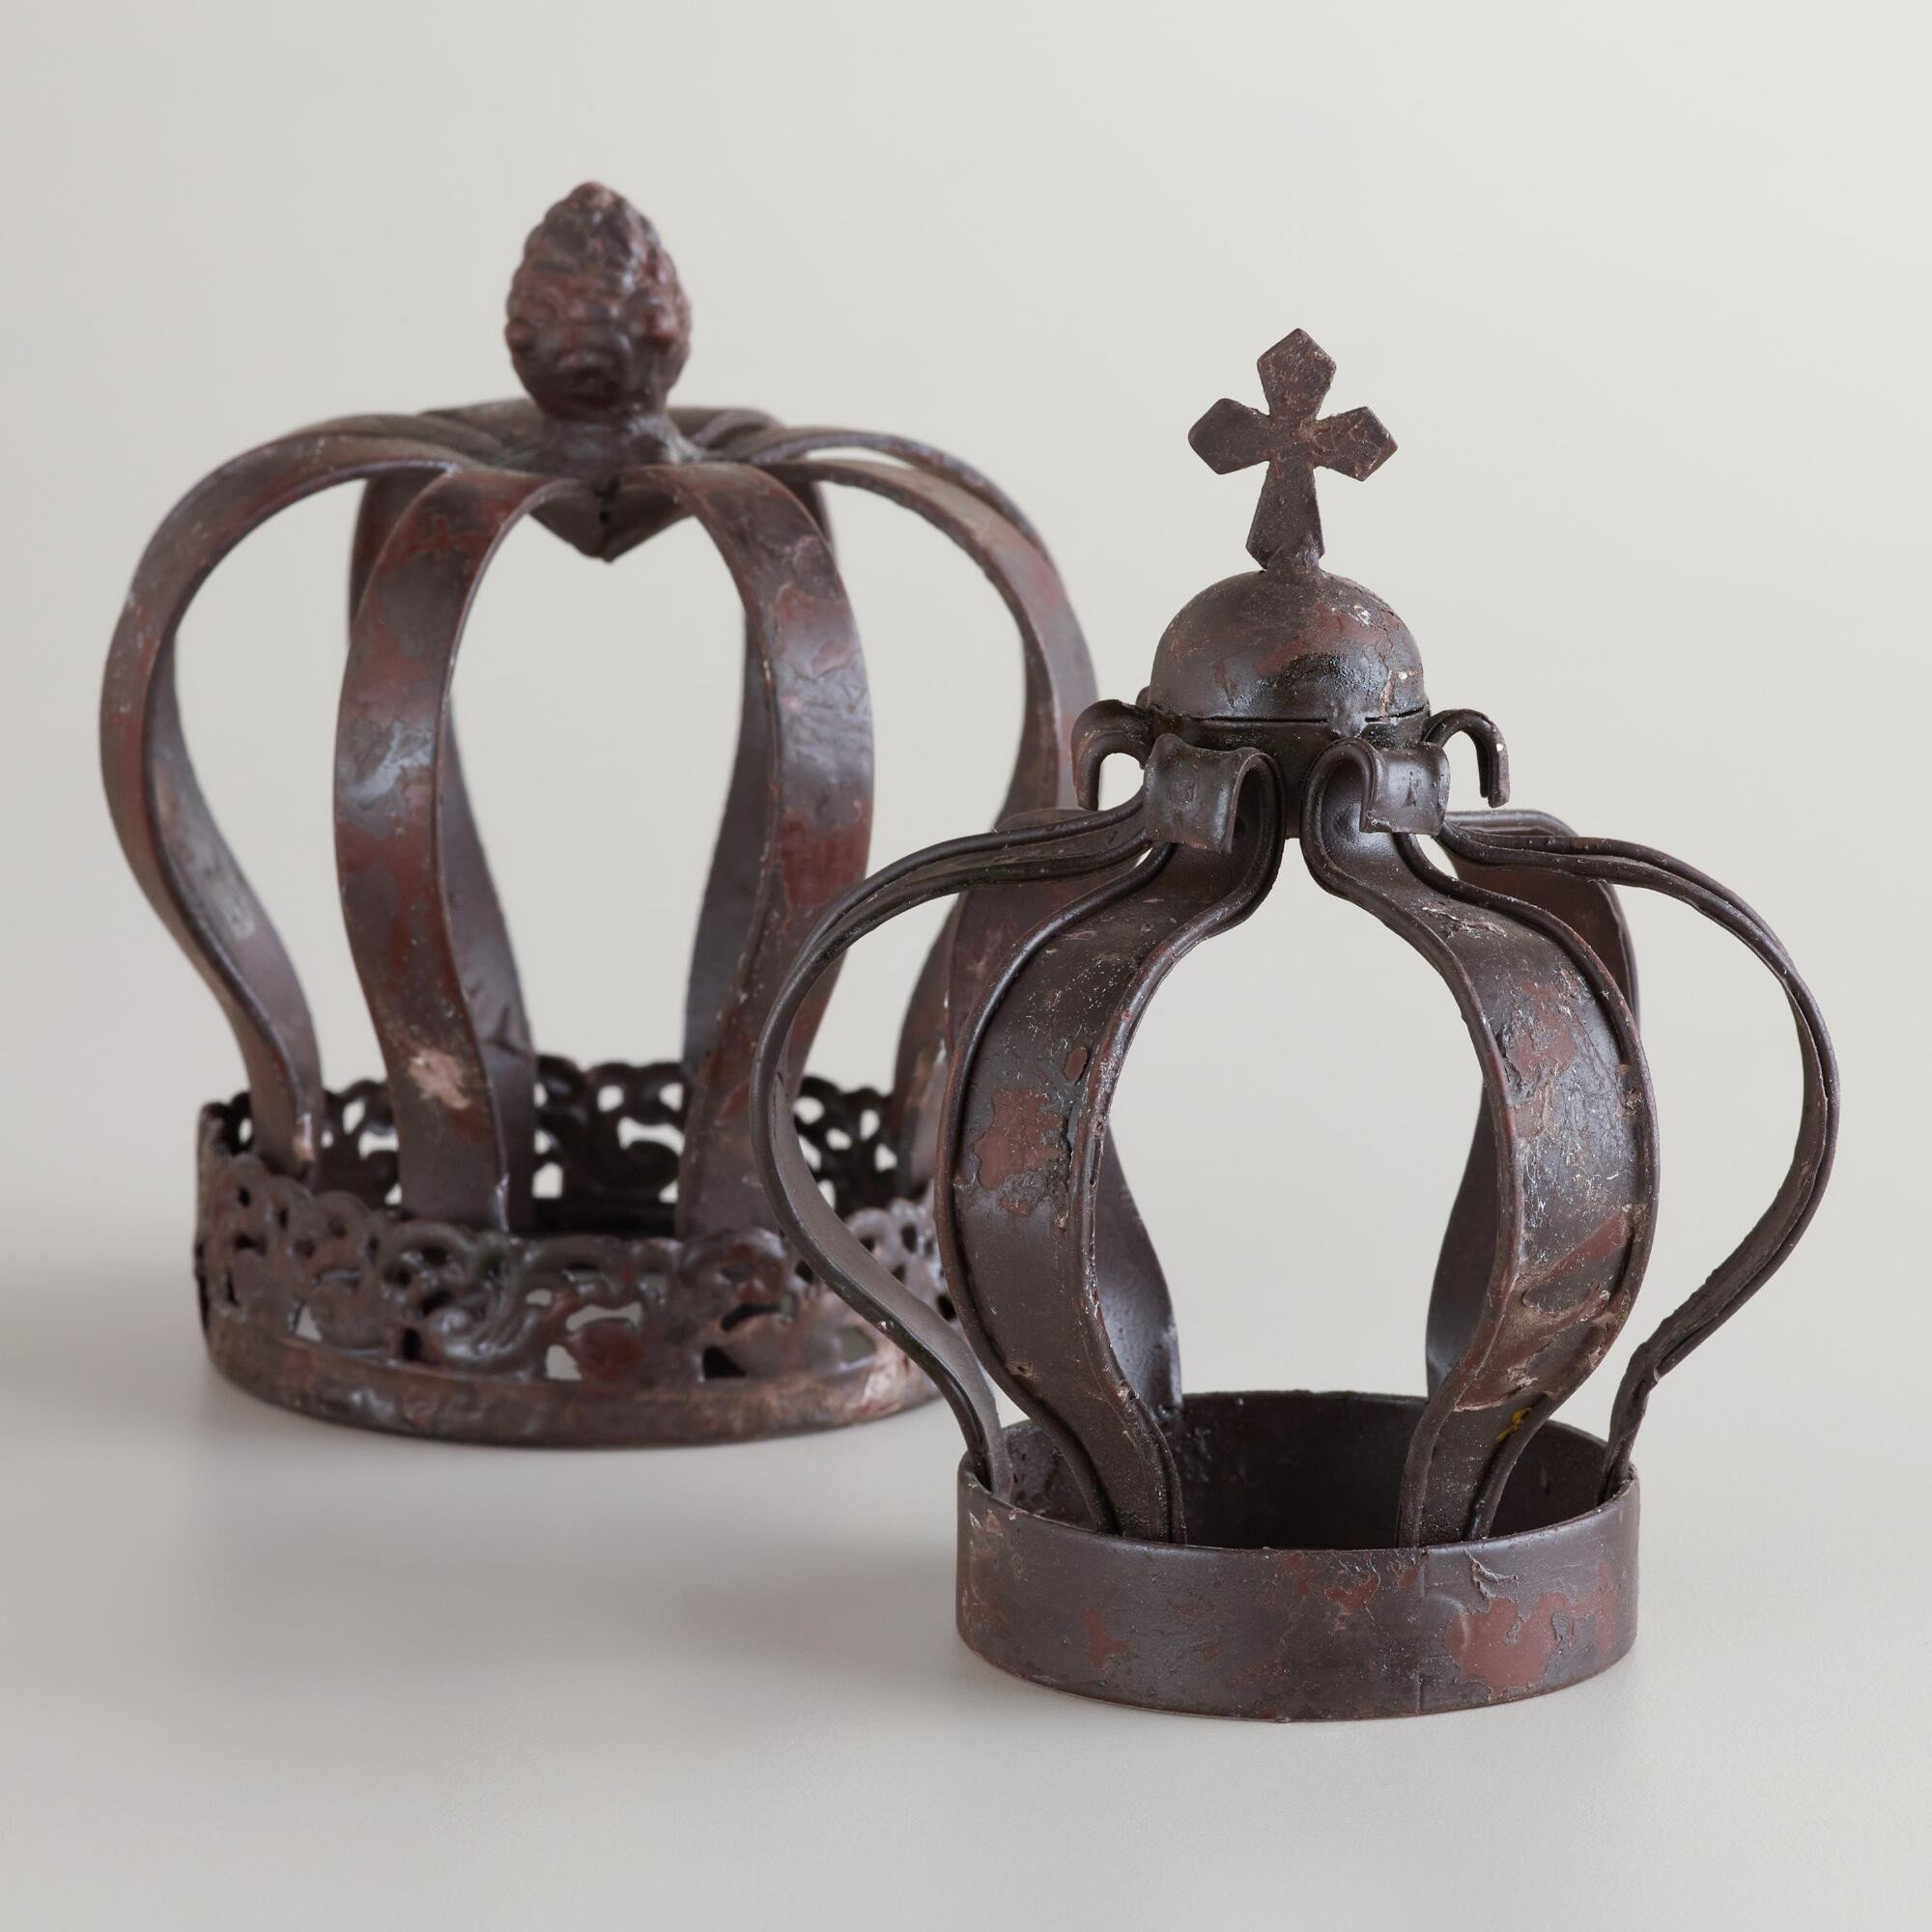 Decorative Crowns for Home Decor Fresh Small Metal Crown Decor Set Of 2